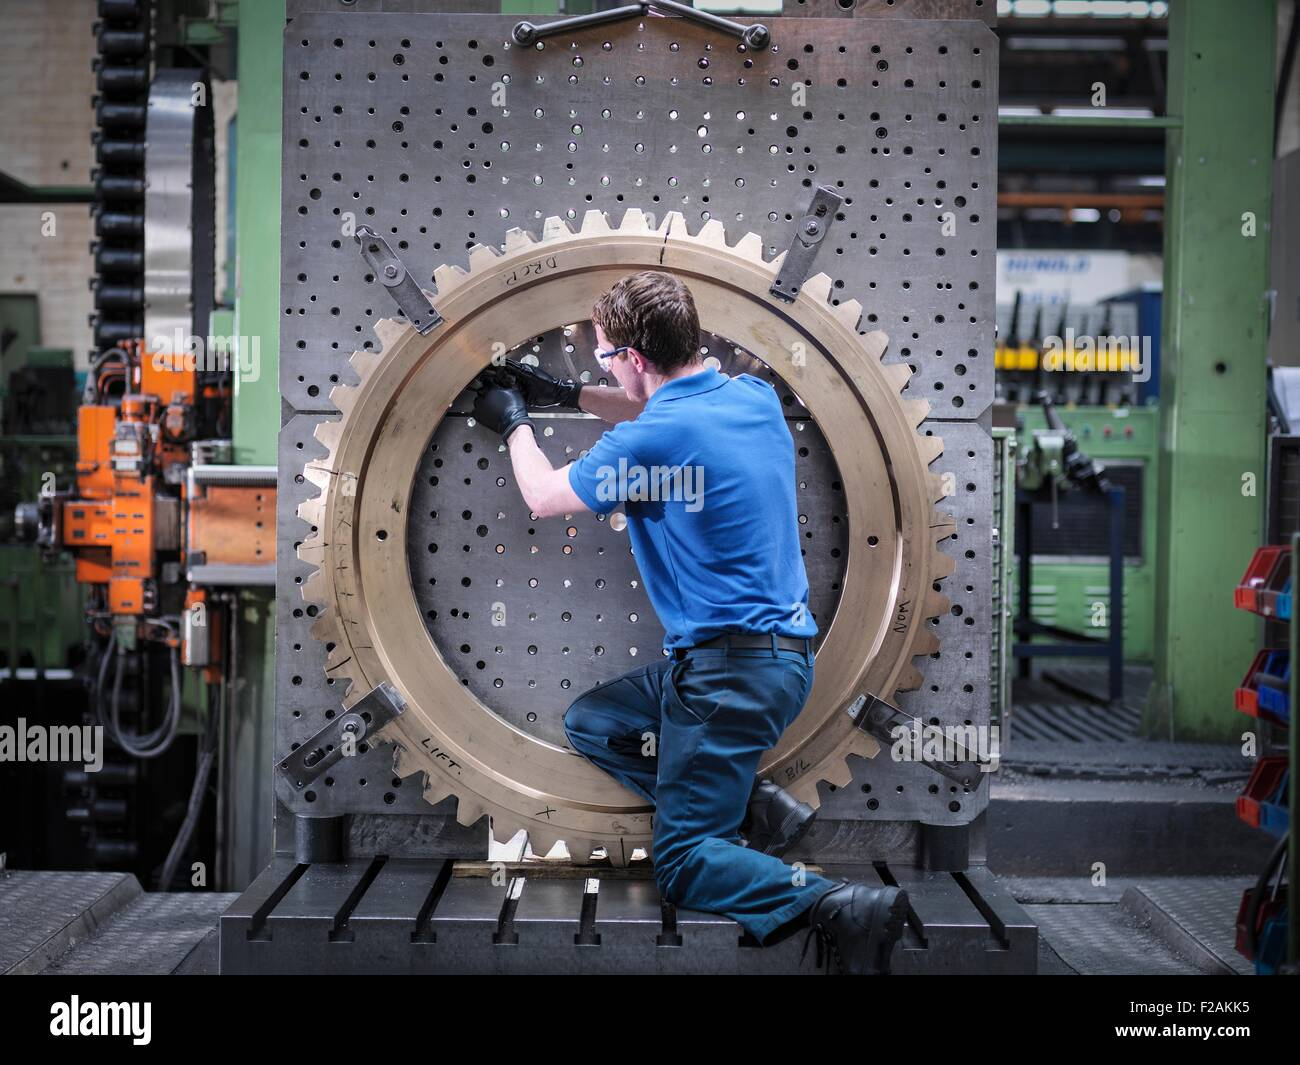 Engineer fitting gear wheel on lathe in engineering factory - Stock Image